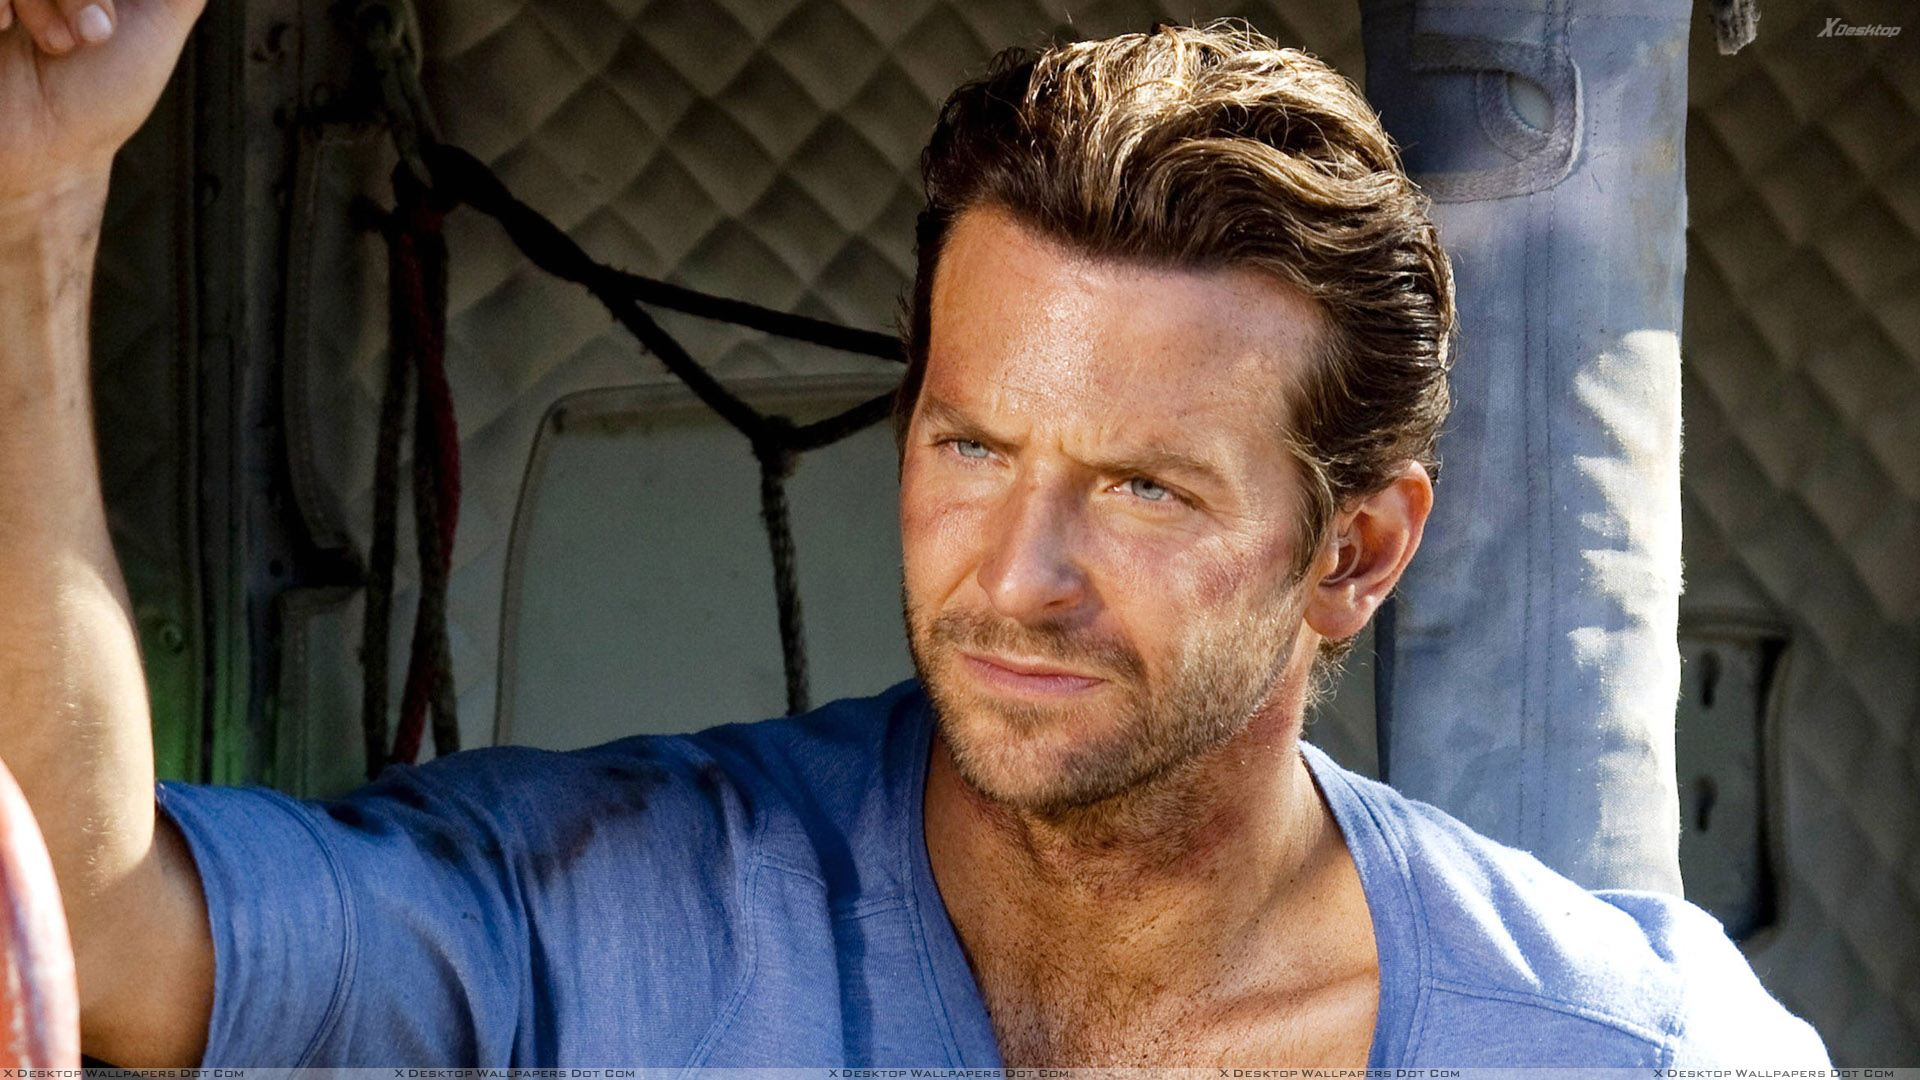 Bradley Cooper Angry Face In Blue T Shirt Photoshoot Wallpaper